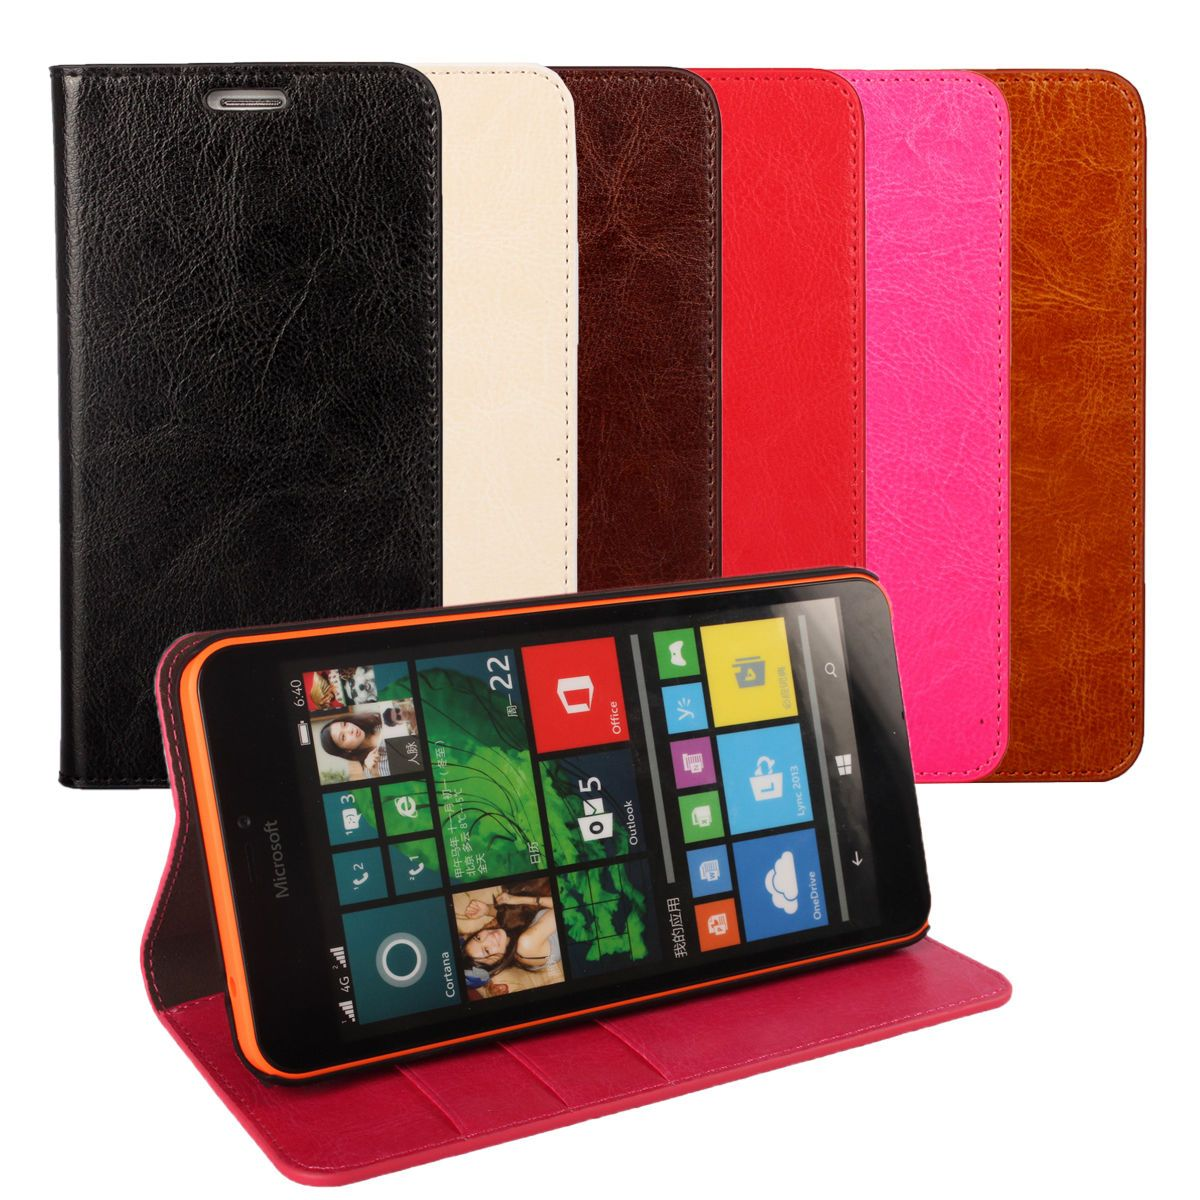 reputable site 79fb3 4d4e8 9.99AUD - Genuine Leather Wallet Card Holder Flip Case Cover For ...